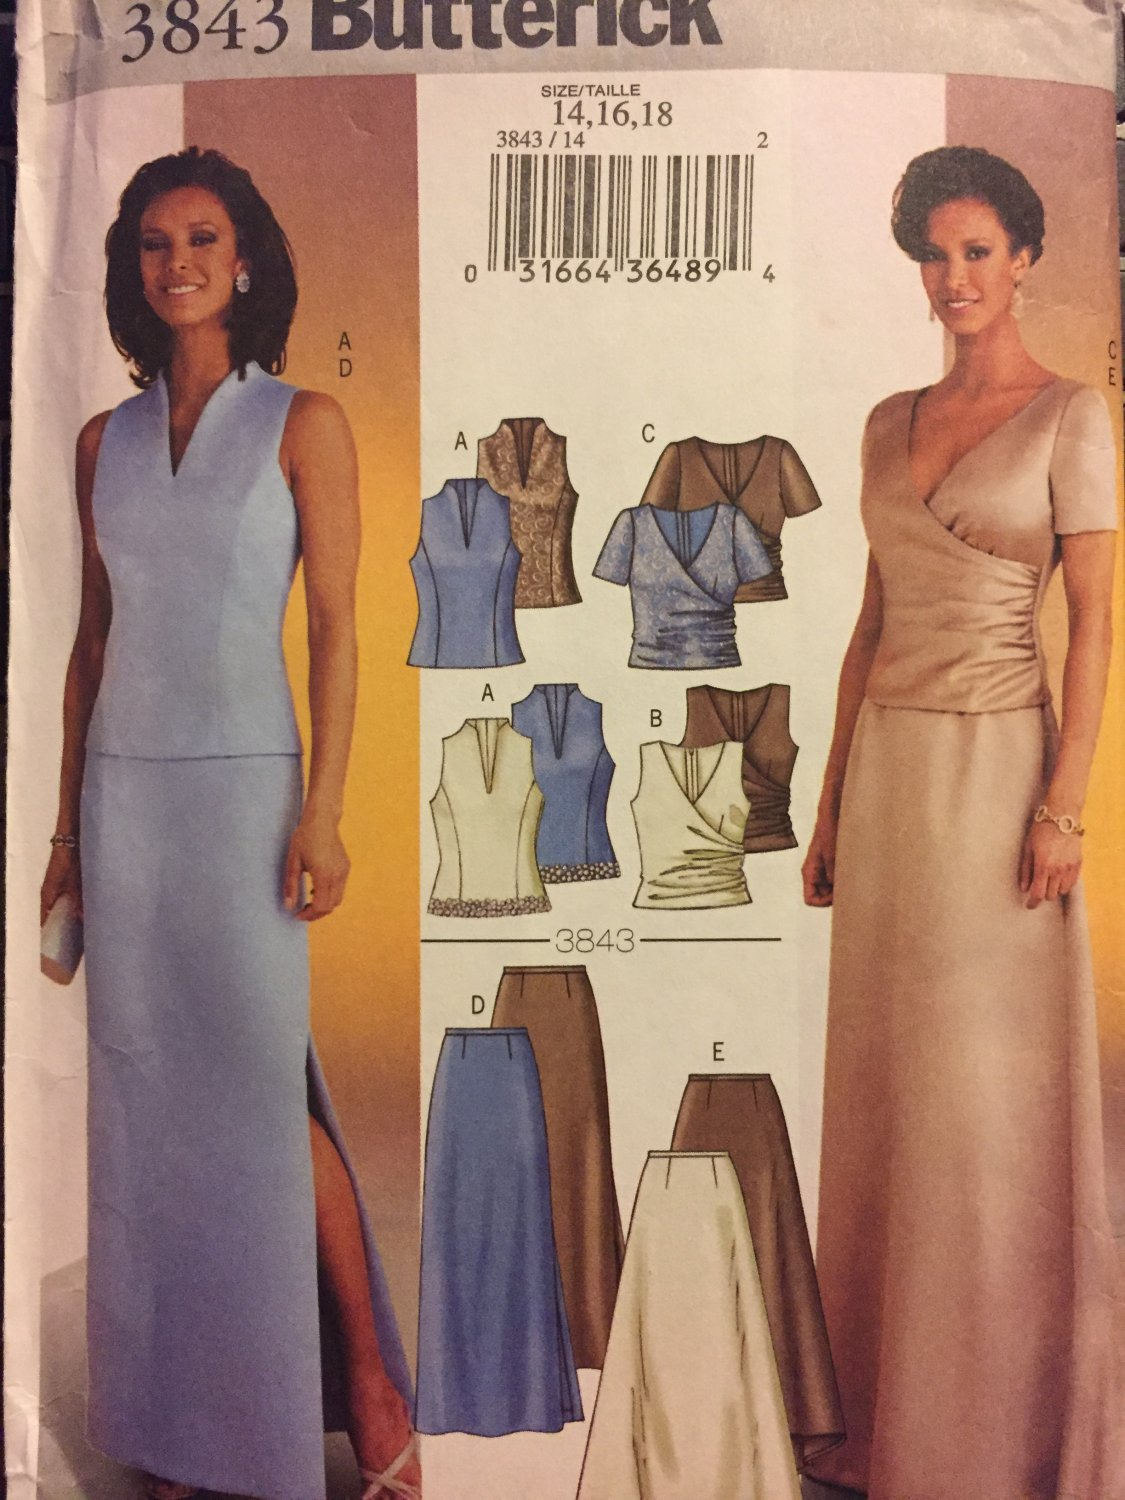 Butterick 3843 Size 14, 16, 18 Misses Evening Wear Long Skirt and Top Sewing Pattern